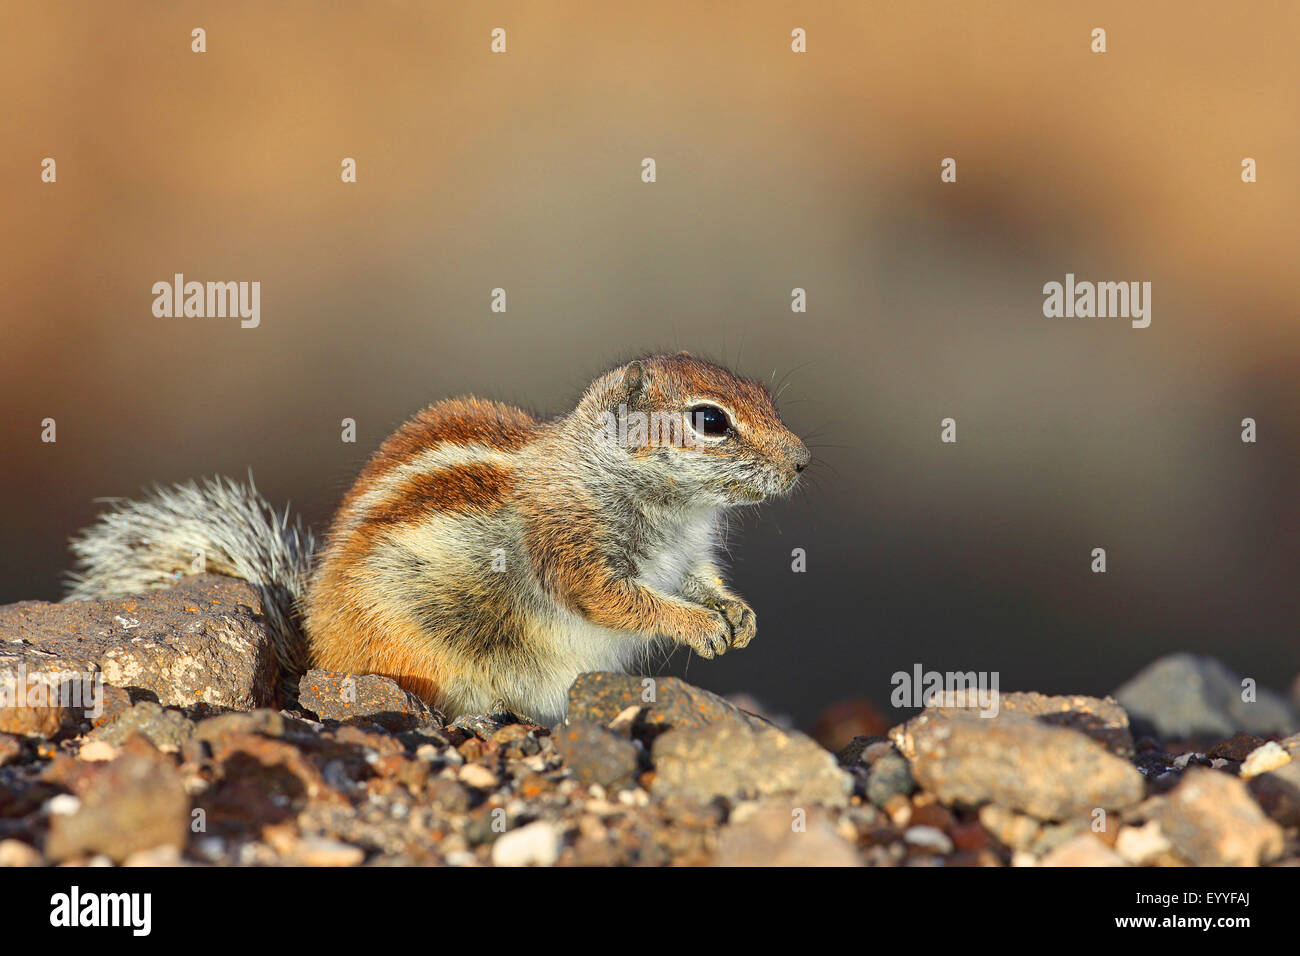 barbary ground squirrel, North African ground squirrel (Atlantoxerus getulus), sits on a stone, Canary Islands, - Stock Image